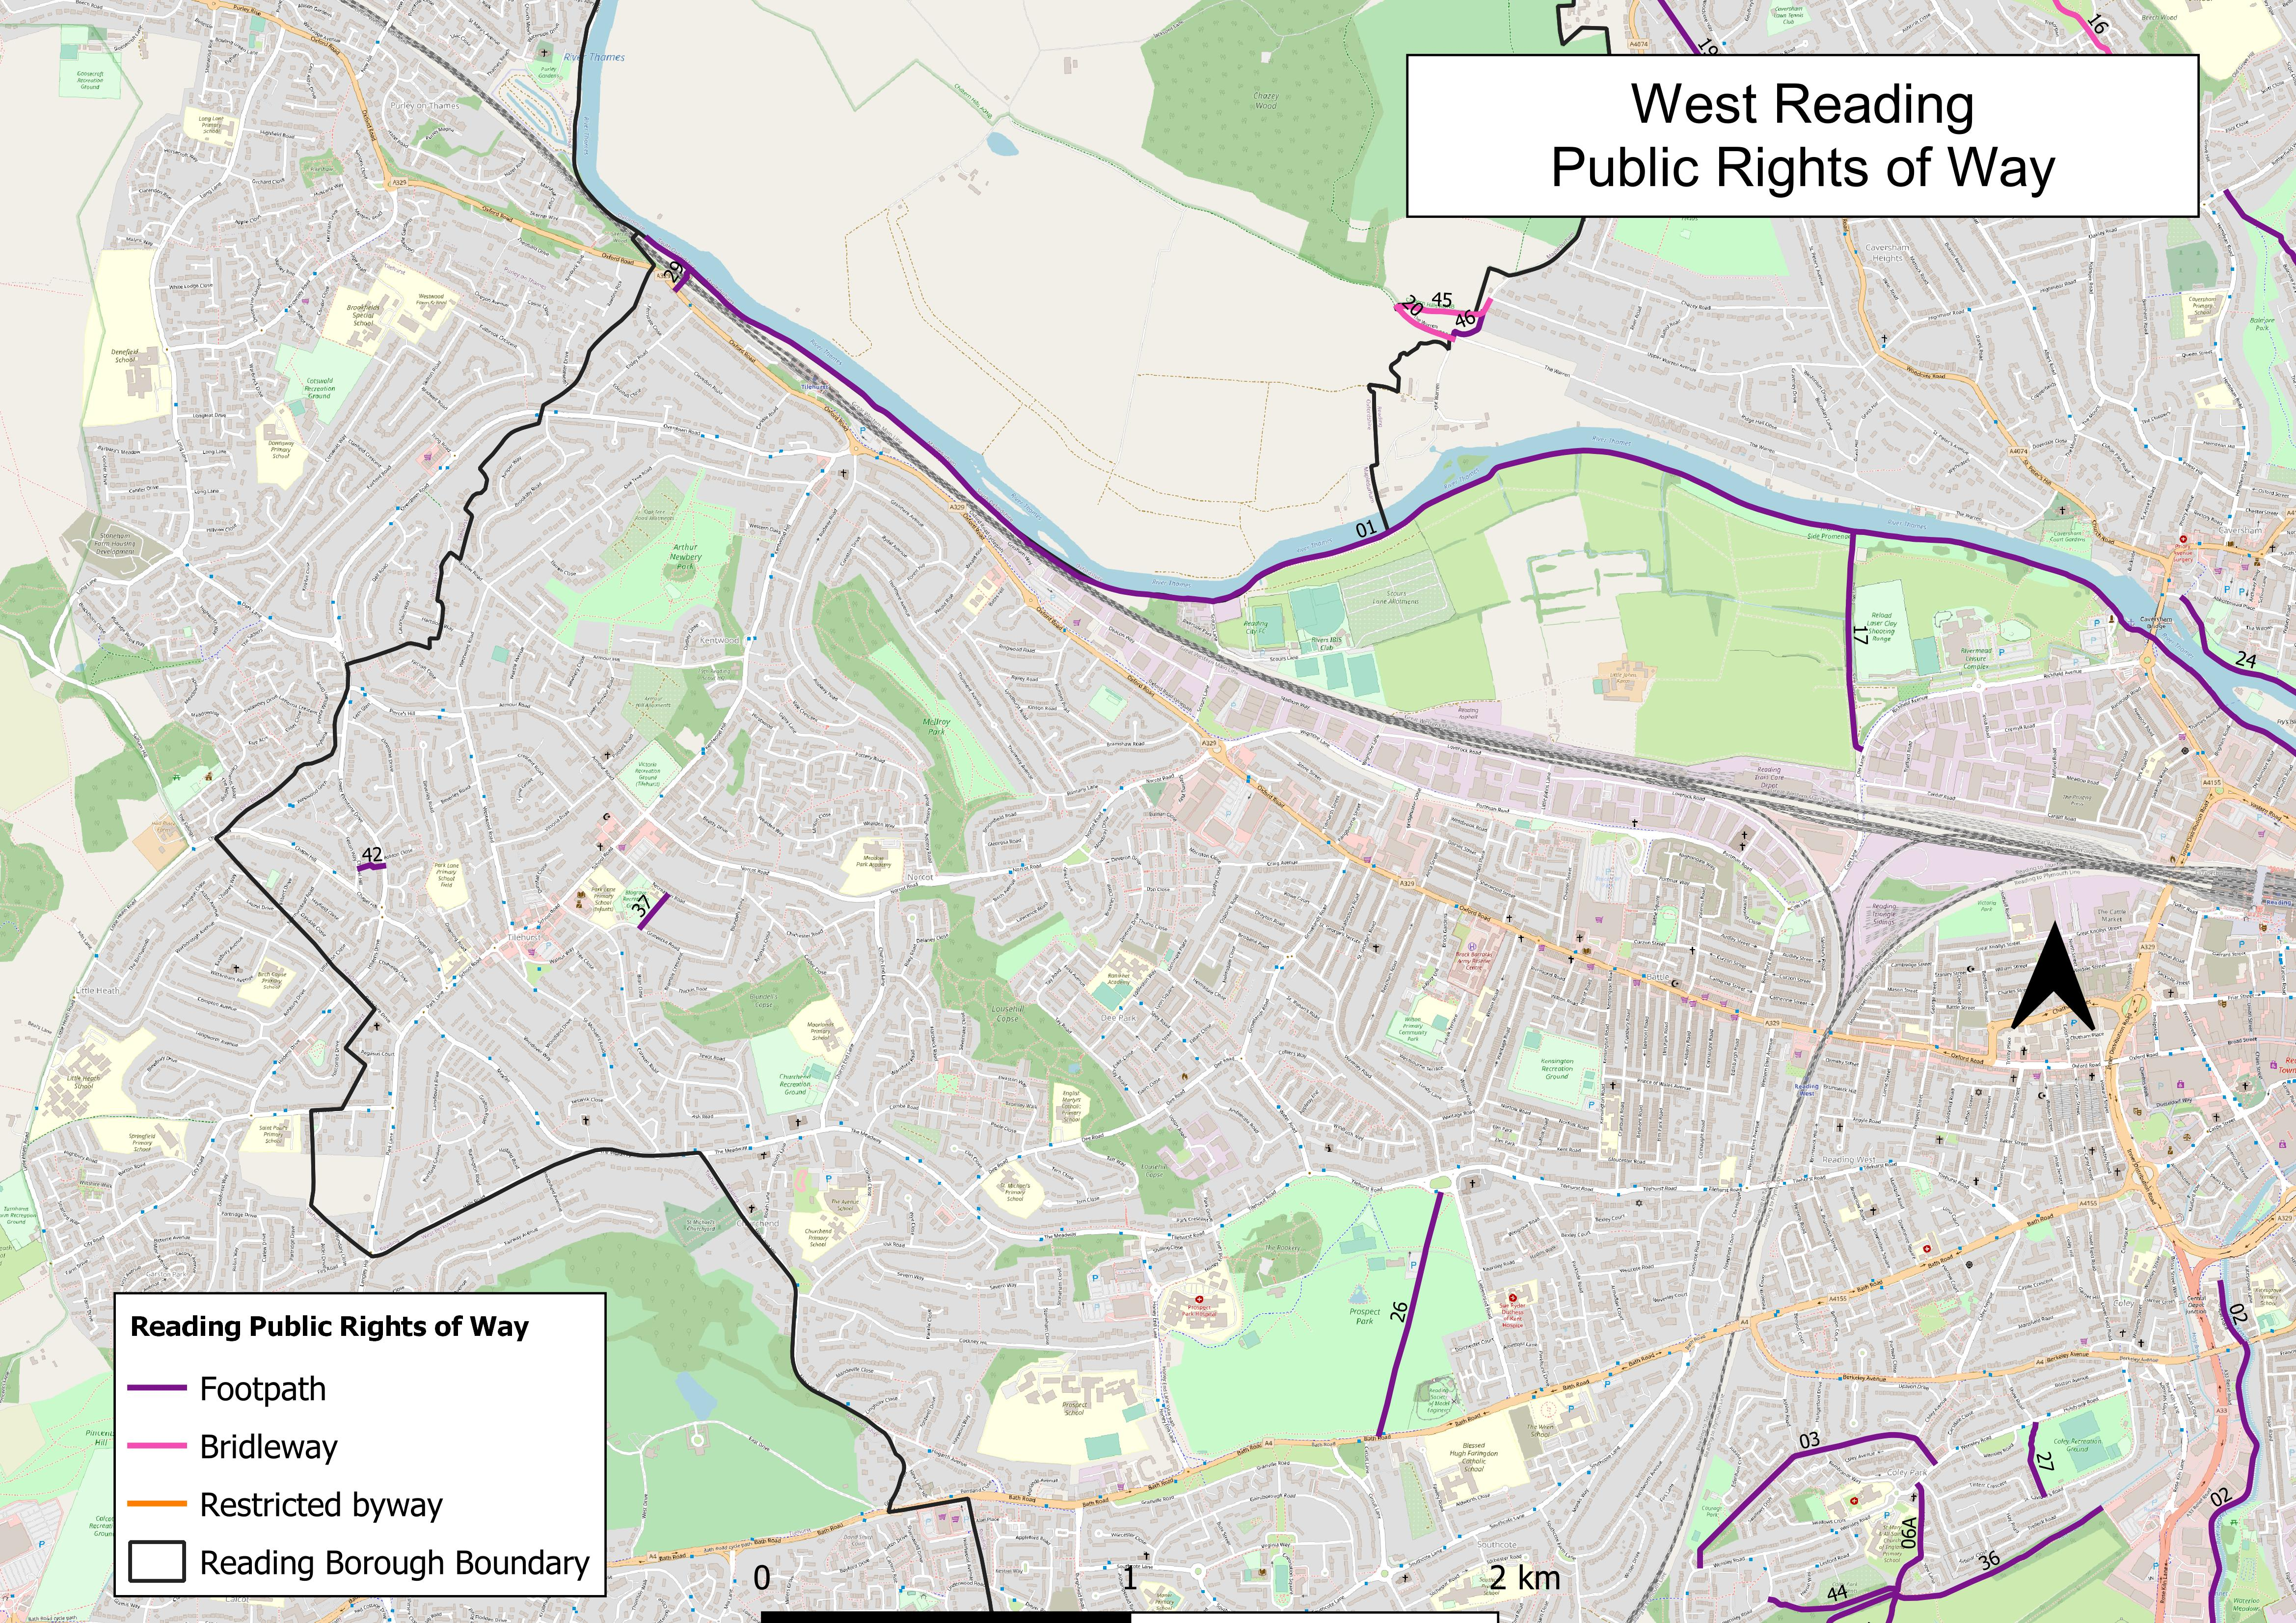 Map of public rights of way in West Reading